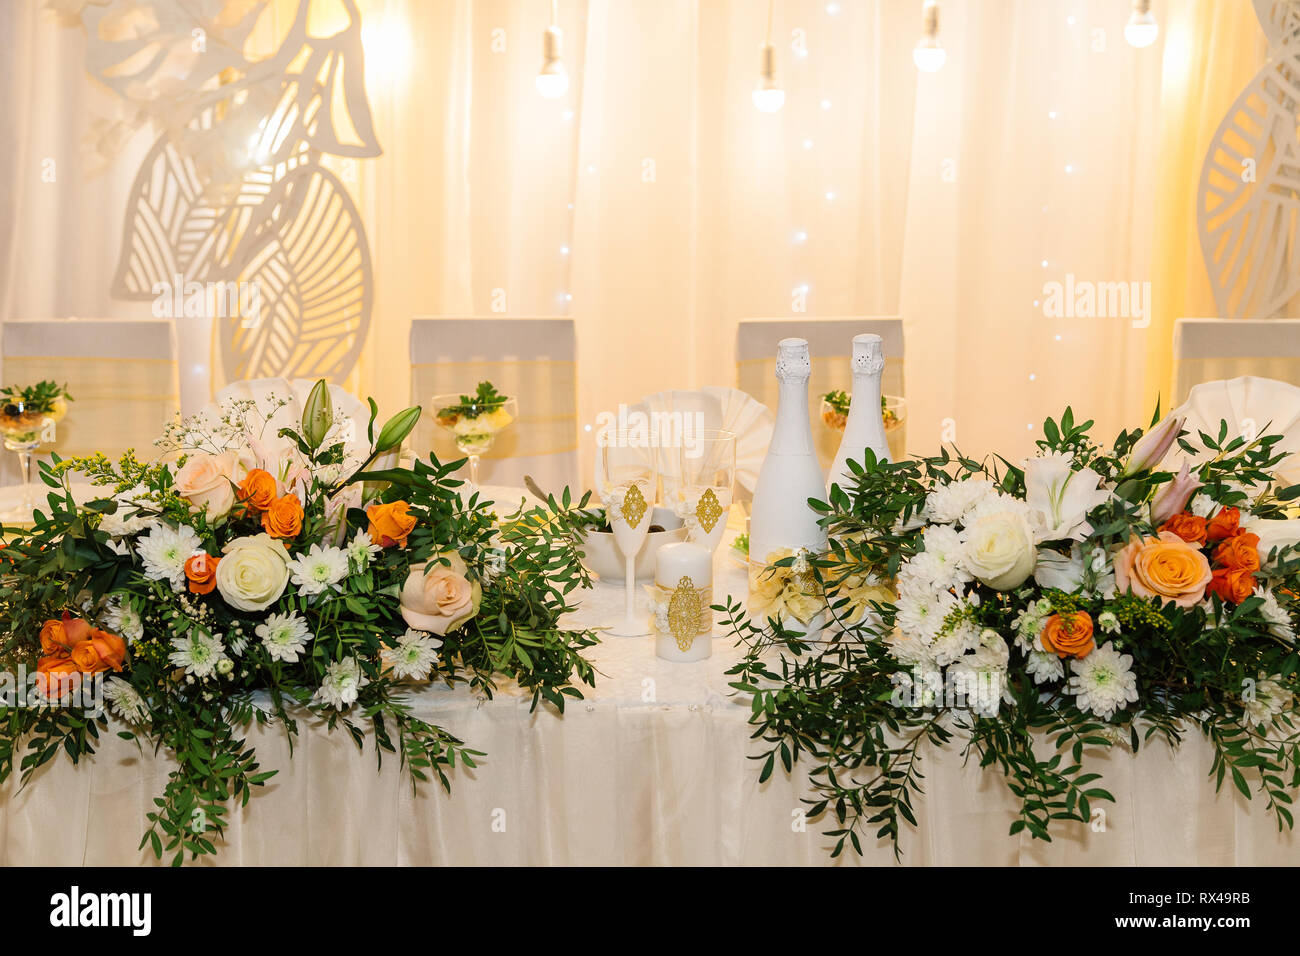 Wedding Decor. Table For The Newlyweds Outdoor. Wedding Reception. Elegant  Wedding Table Arrangement, Floral Decoration, Restaurant. Wedding In The